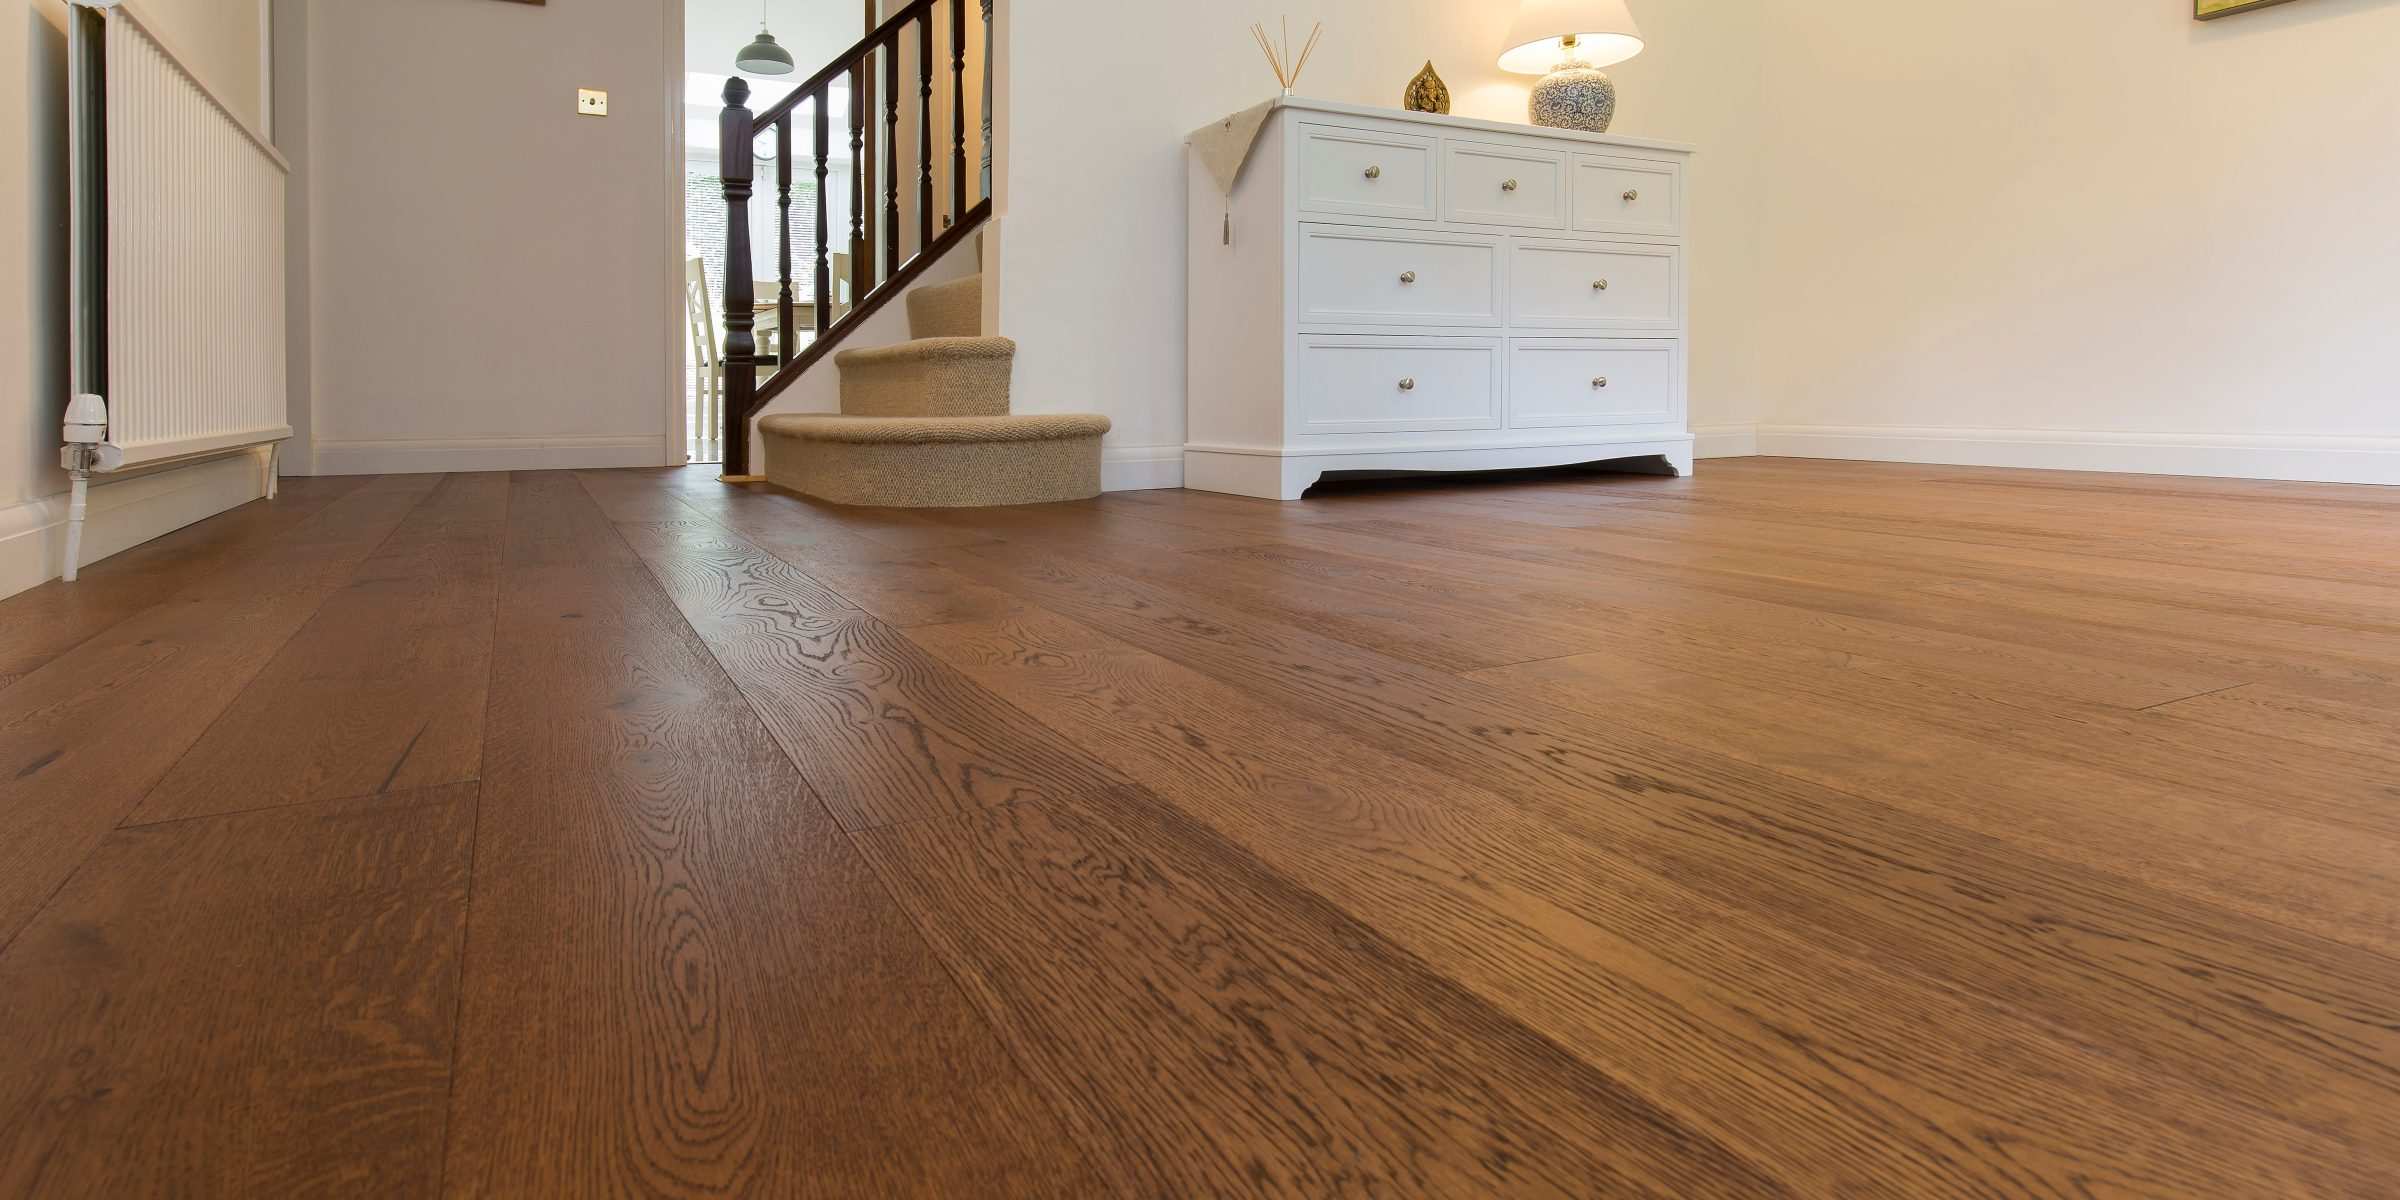 V4's Home Abinger wood floors in Bolton home